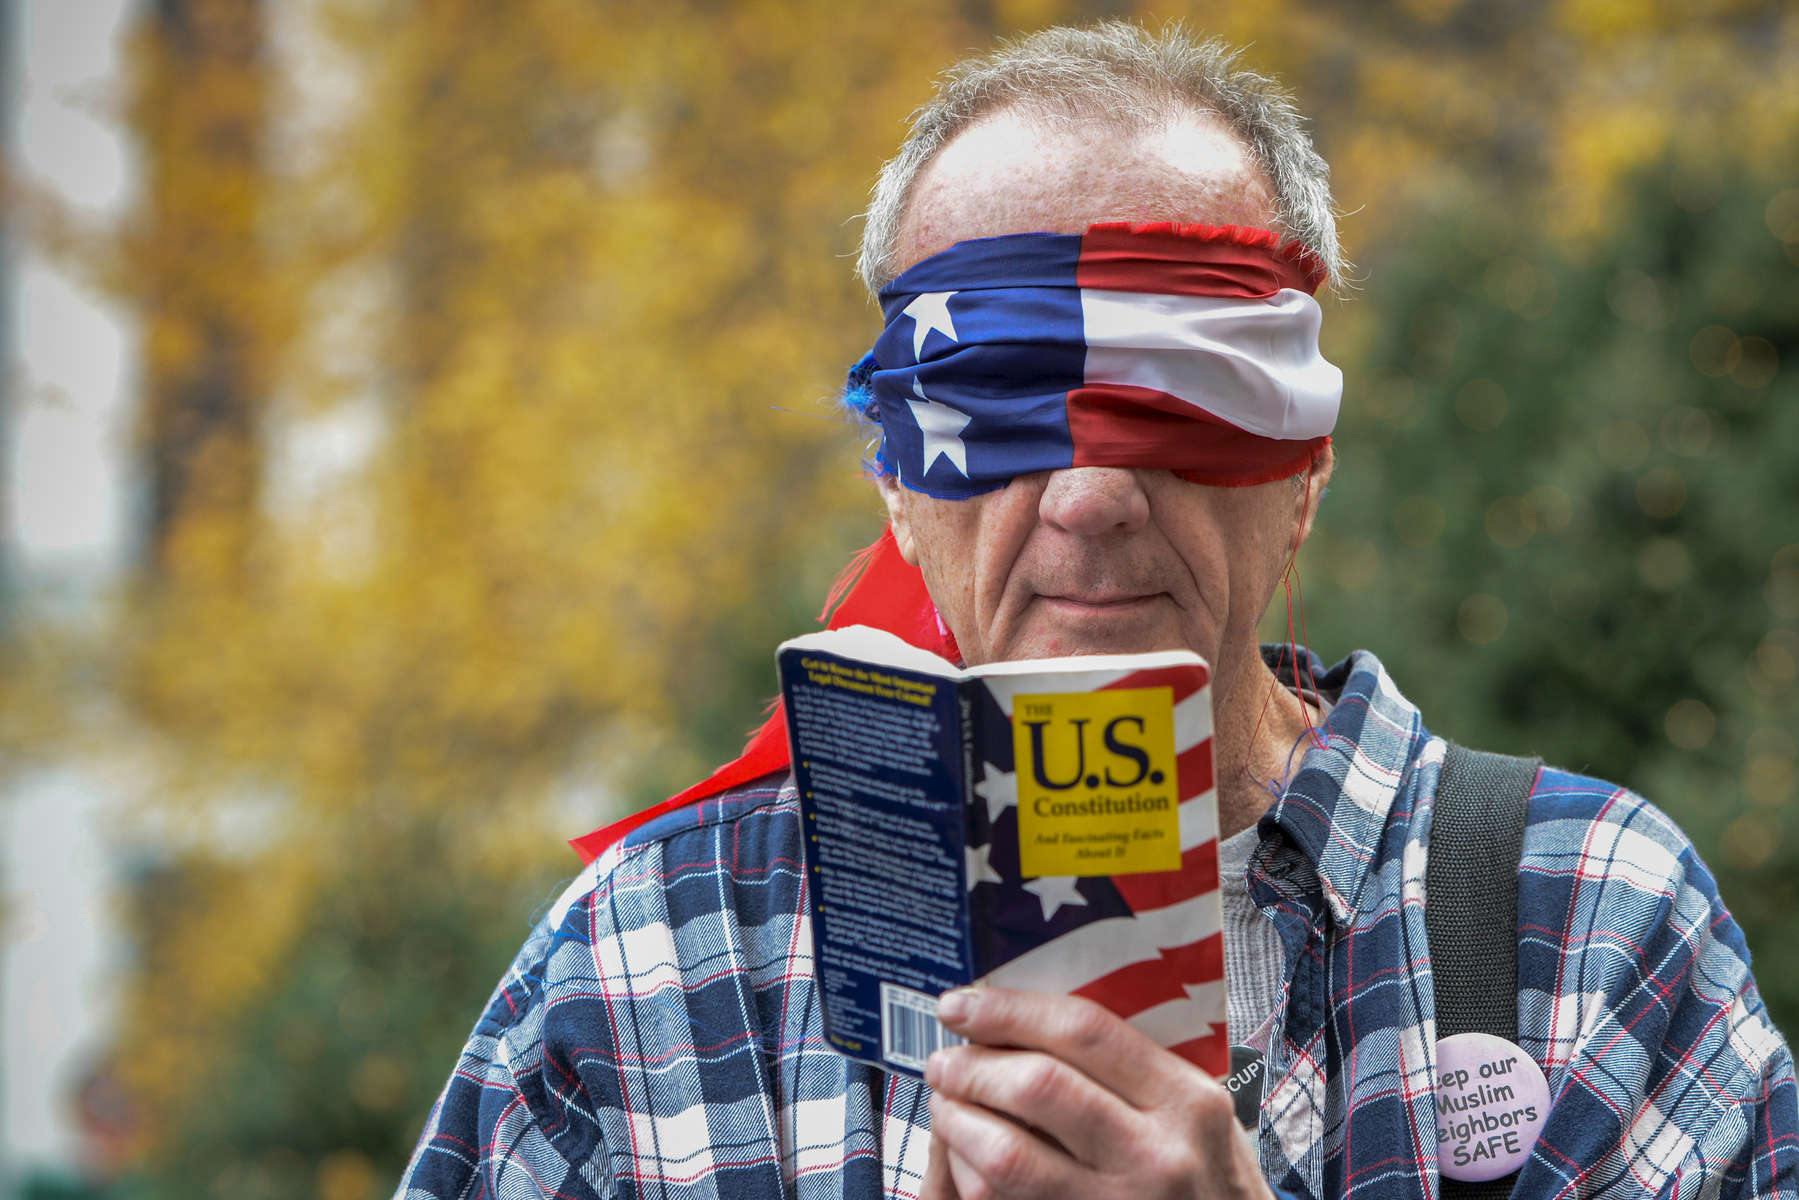 One of the protestors blindfolded himself with an American flag and and makes a gesture of reading the U.S. constitution book as he joins fellow protestors outside the Plaza Hotel as Republican presidential candidate Donald Trump speaks, located at 768 5th Avenue in midtown Manhattan on Friday, December 11, 2015.